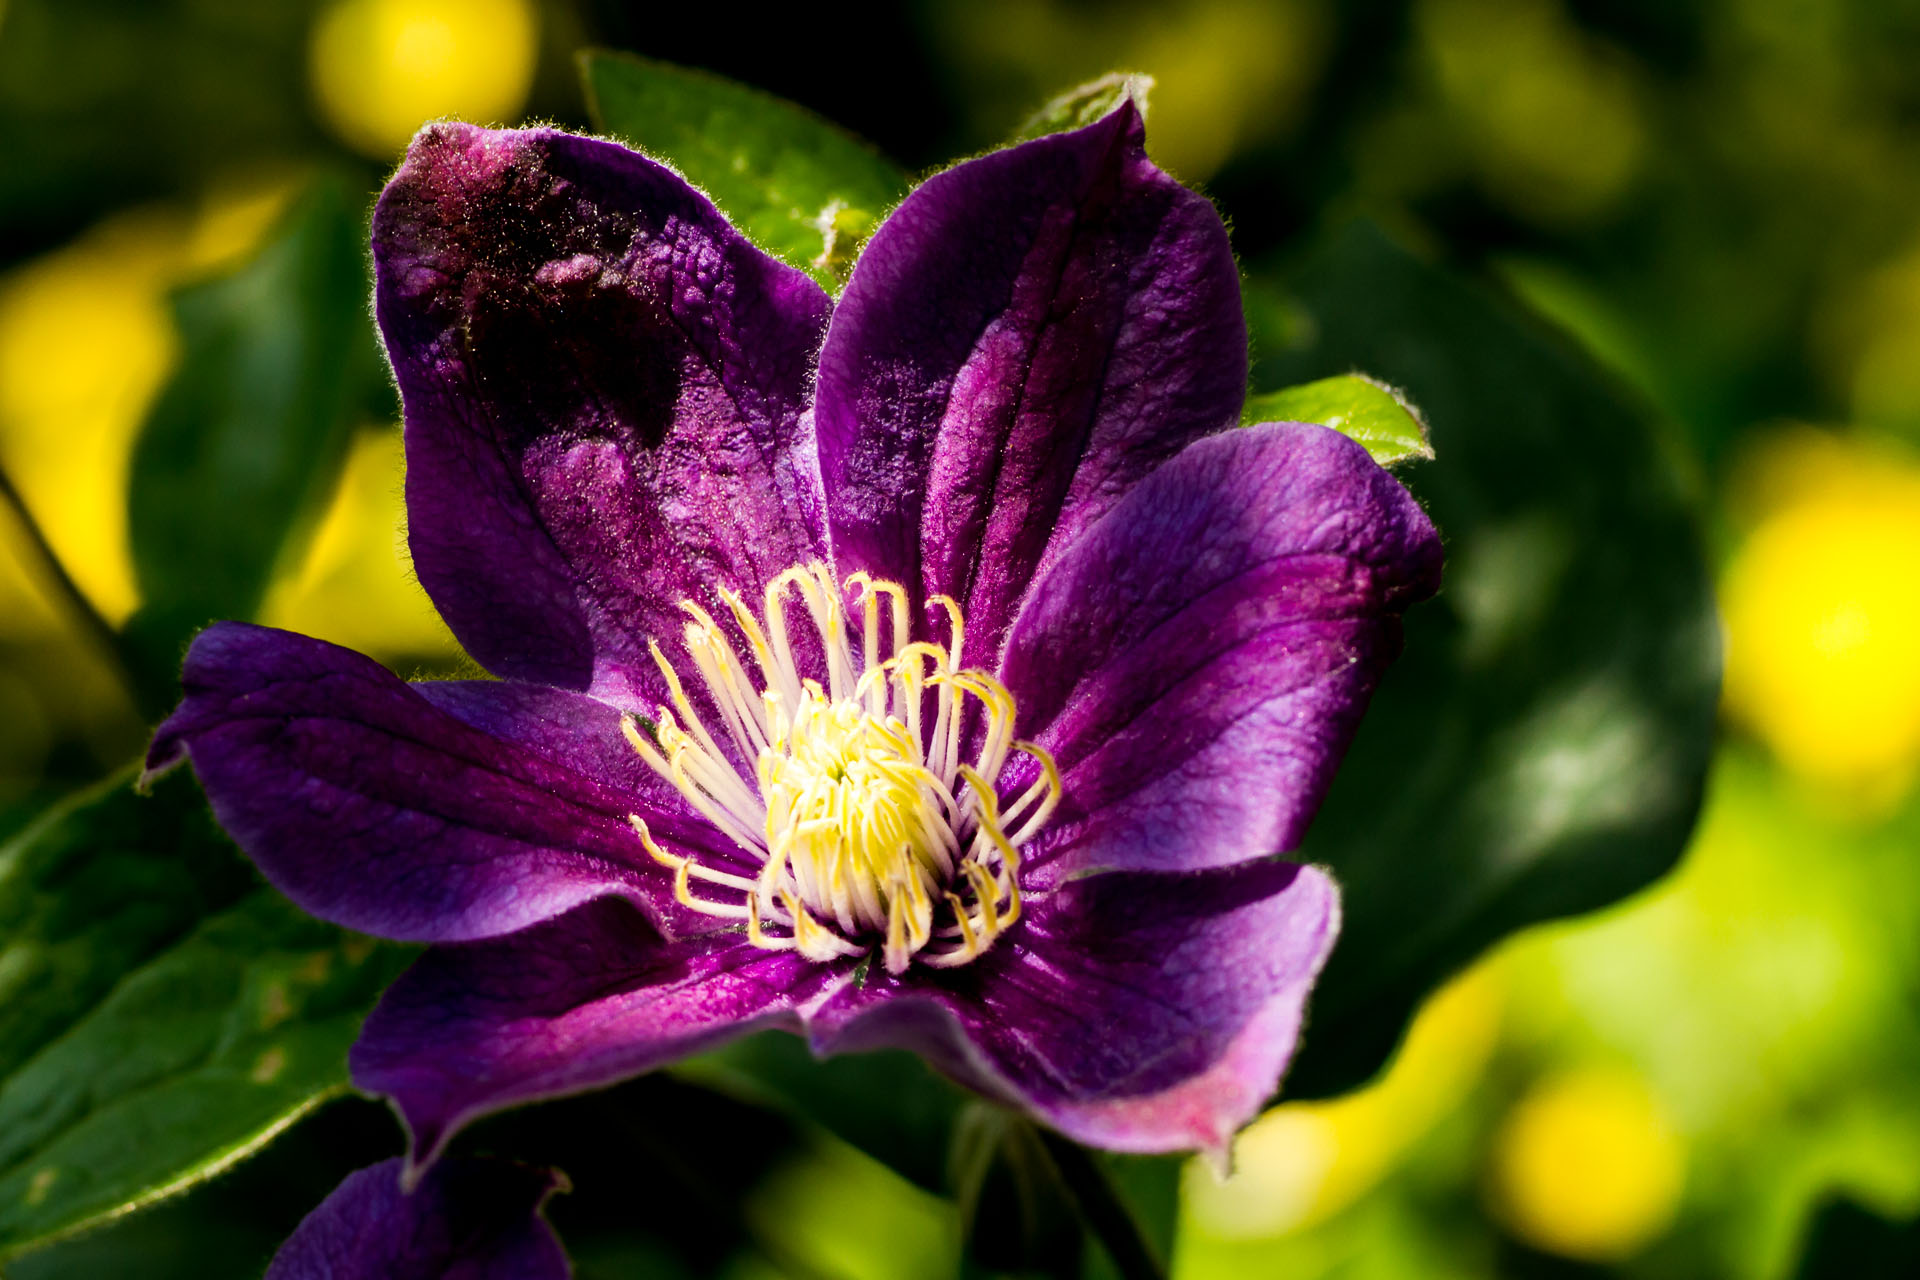 Filelarge Purple Clematis Flower With White Finger Stamensg